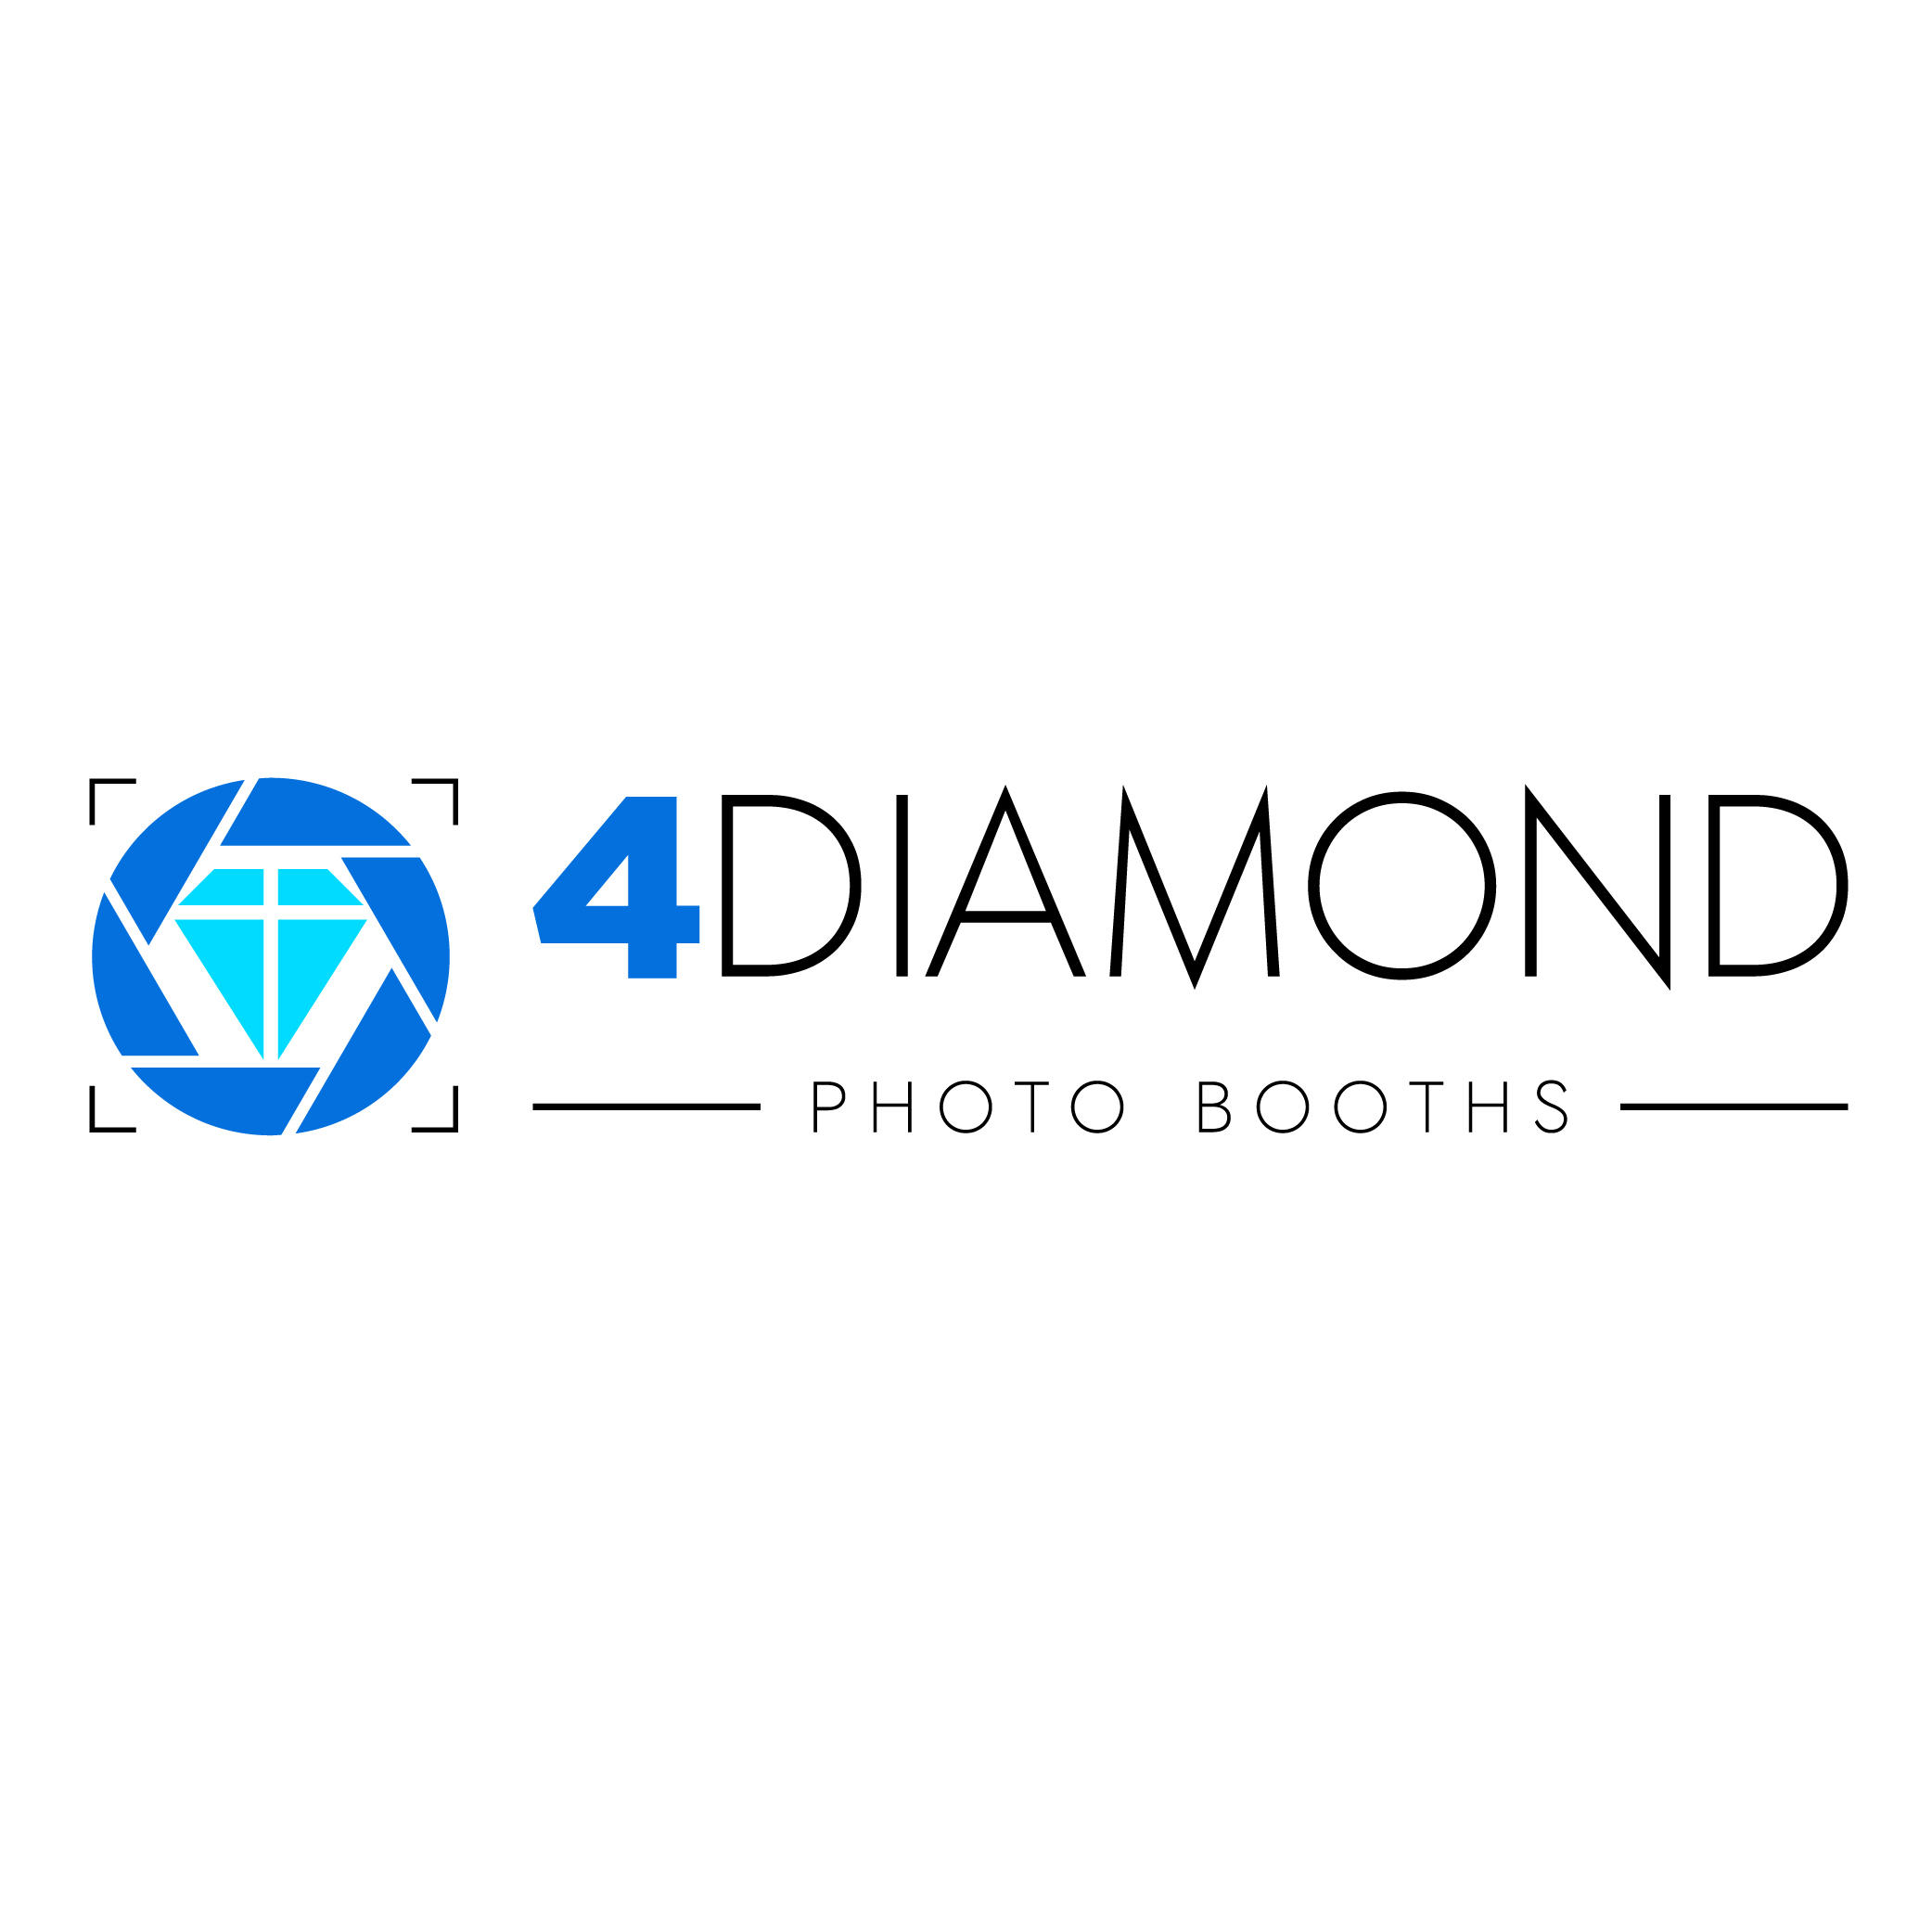 4 Diamond Events & Photo Booths image 6